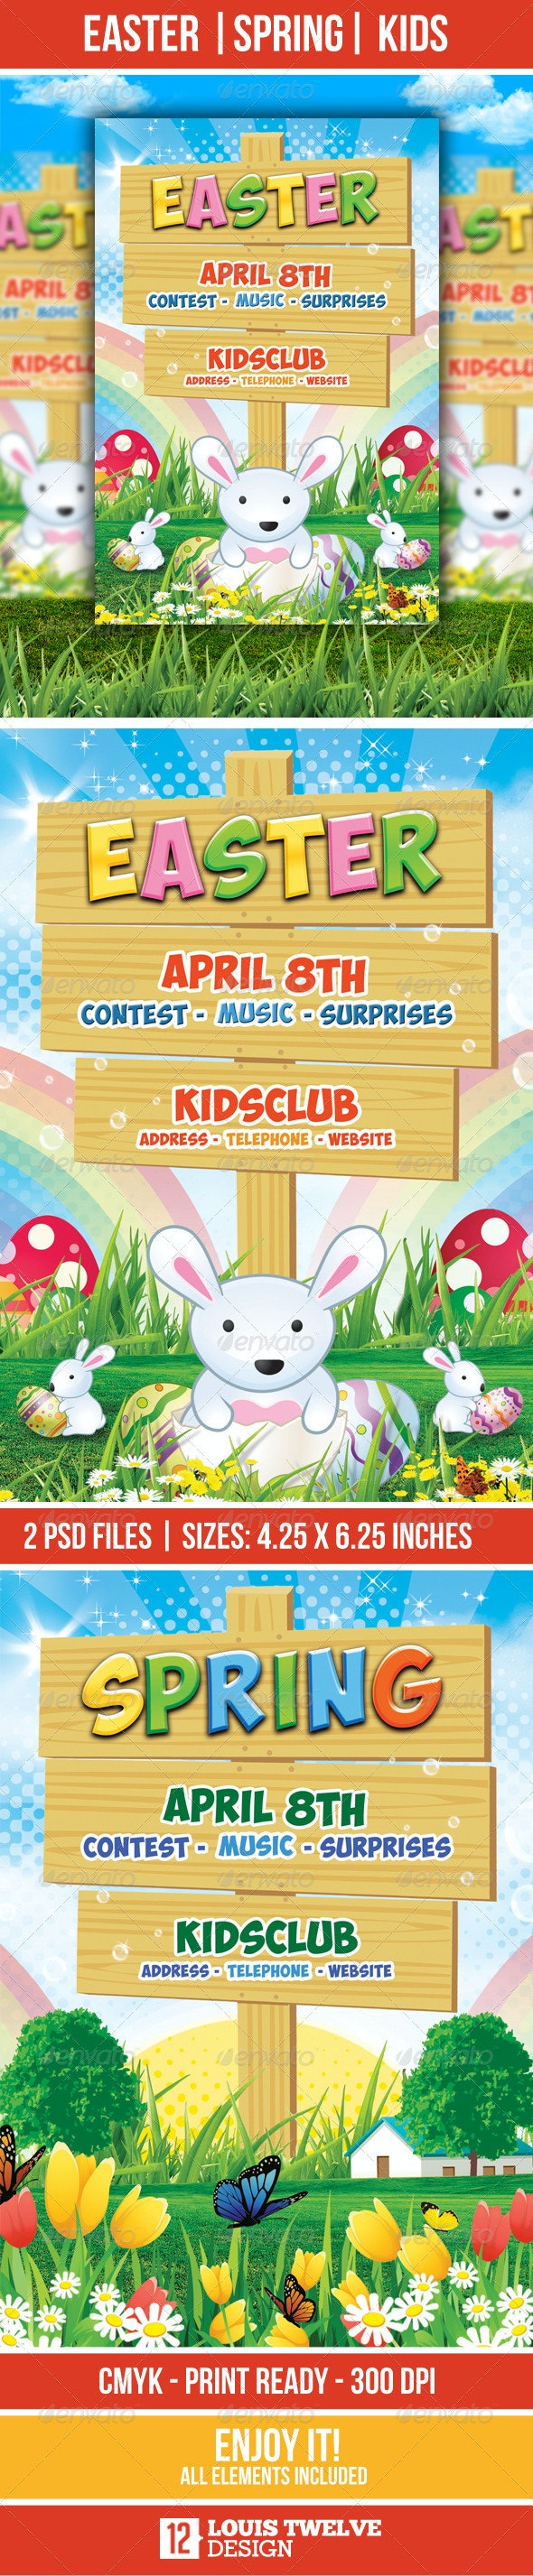 Easter Kids - Spring - Flyer Template - Flyers Print Templates